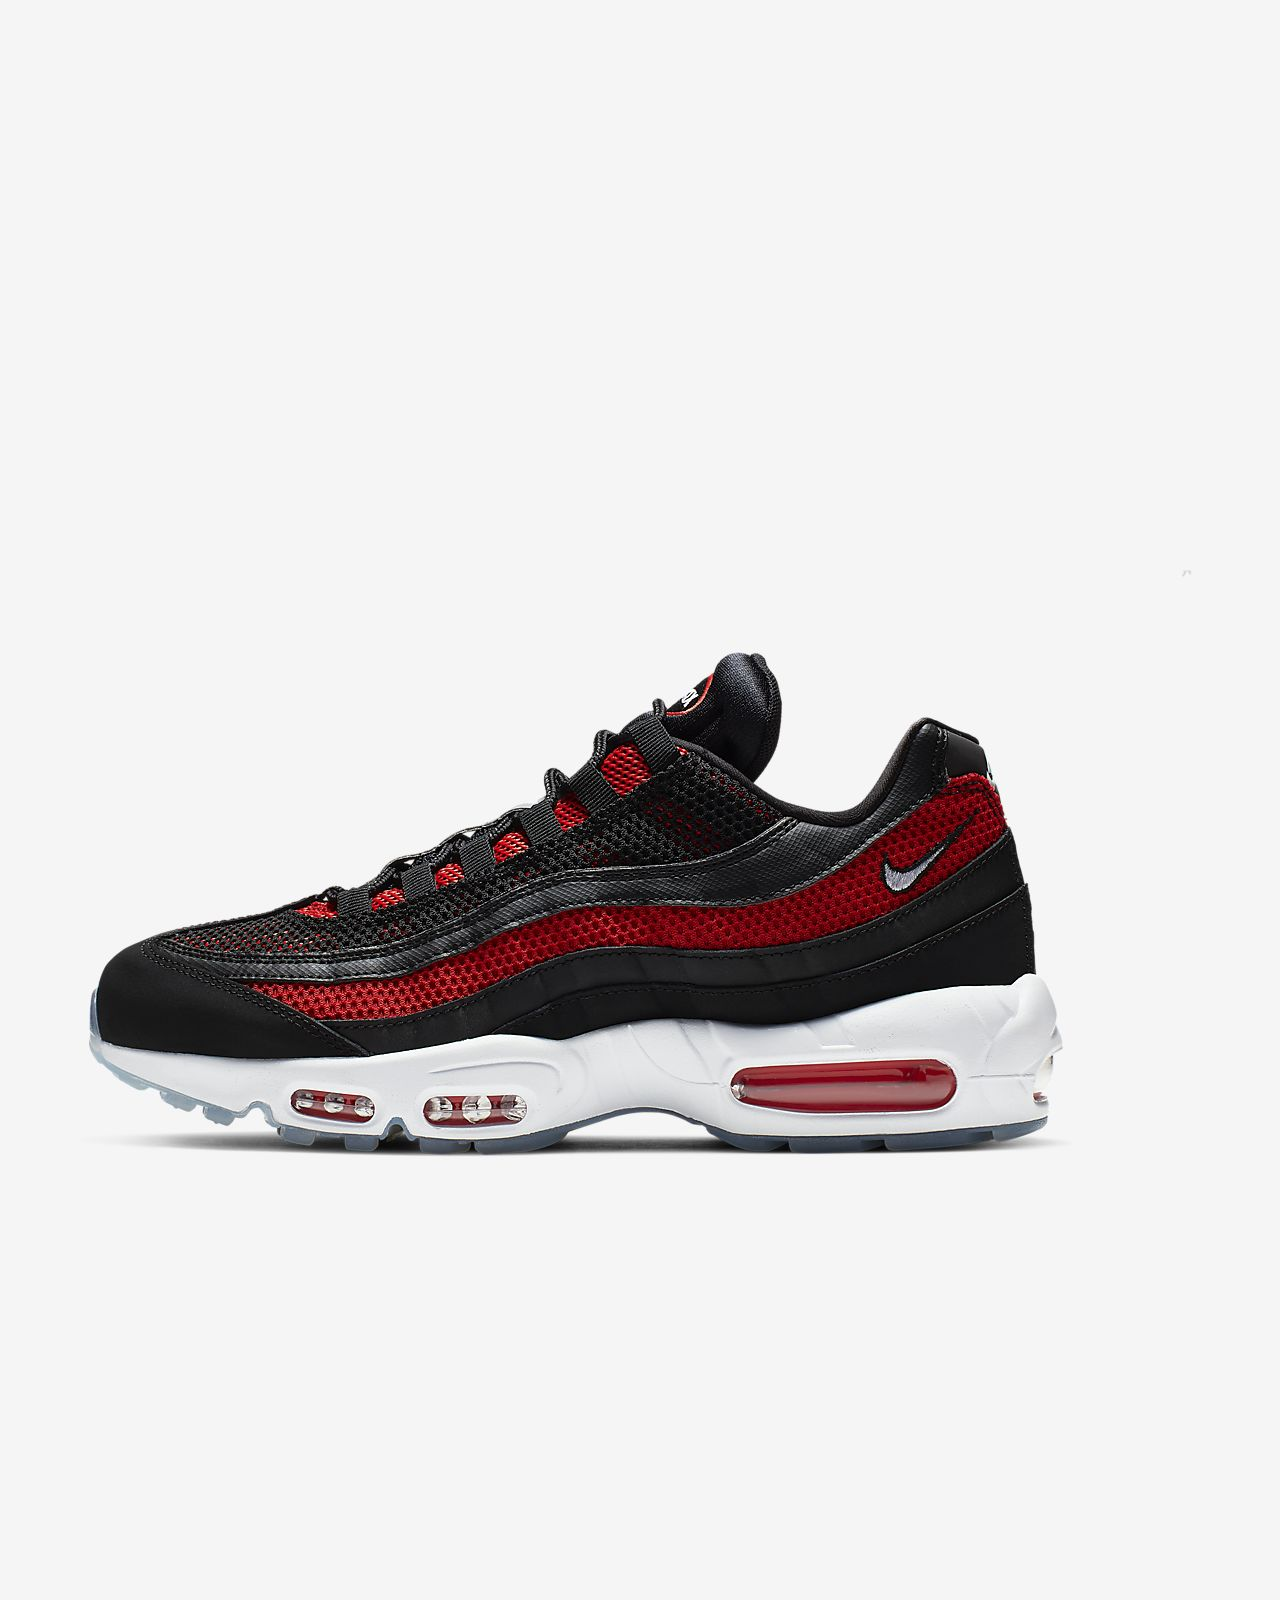 official photos 8f6be 3f700 Nike Air Max 95 Essential